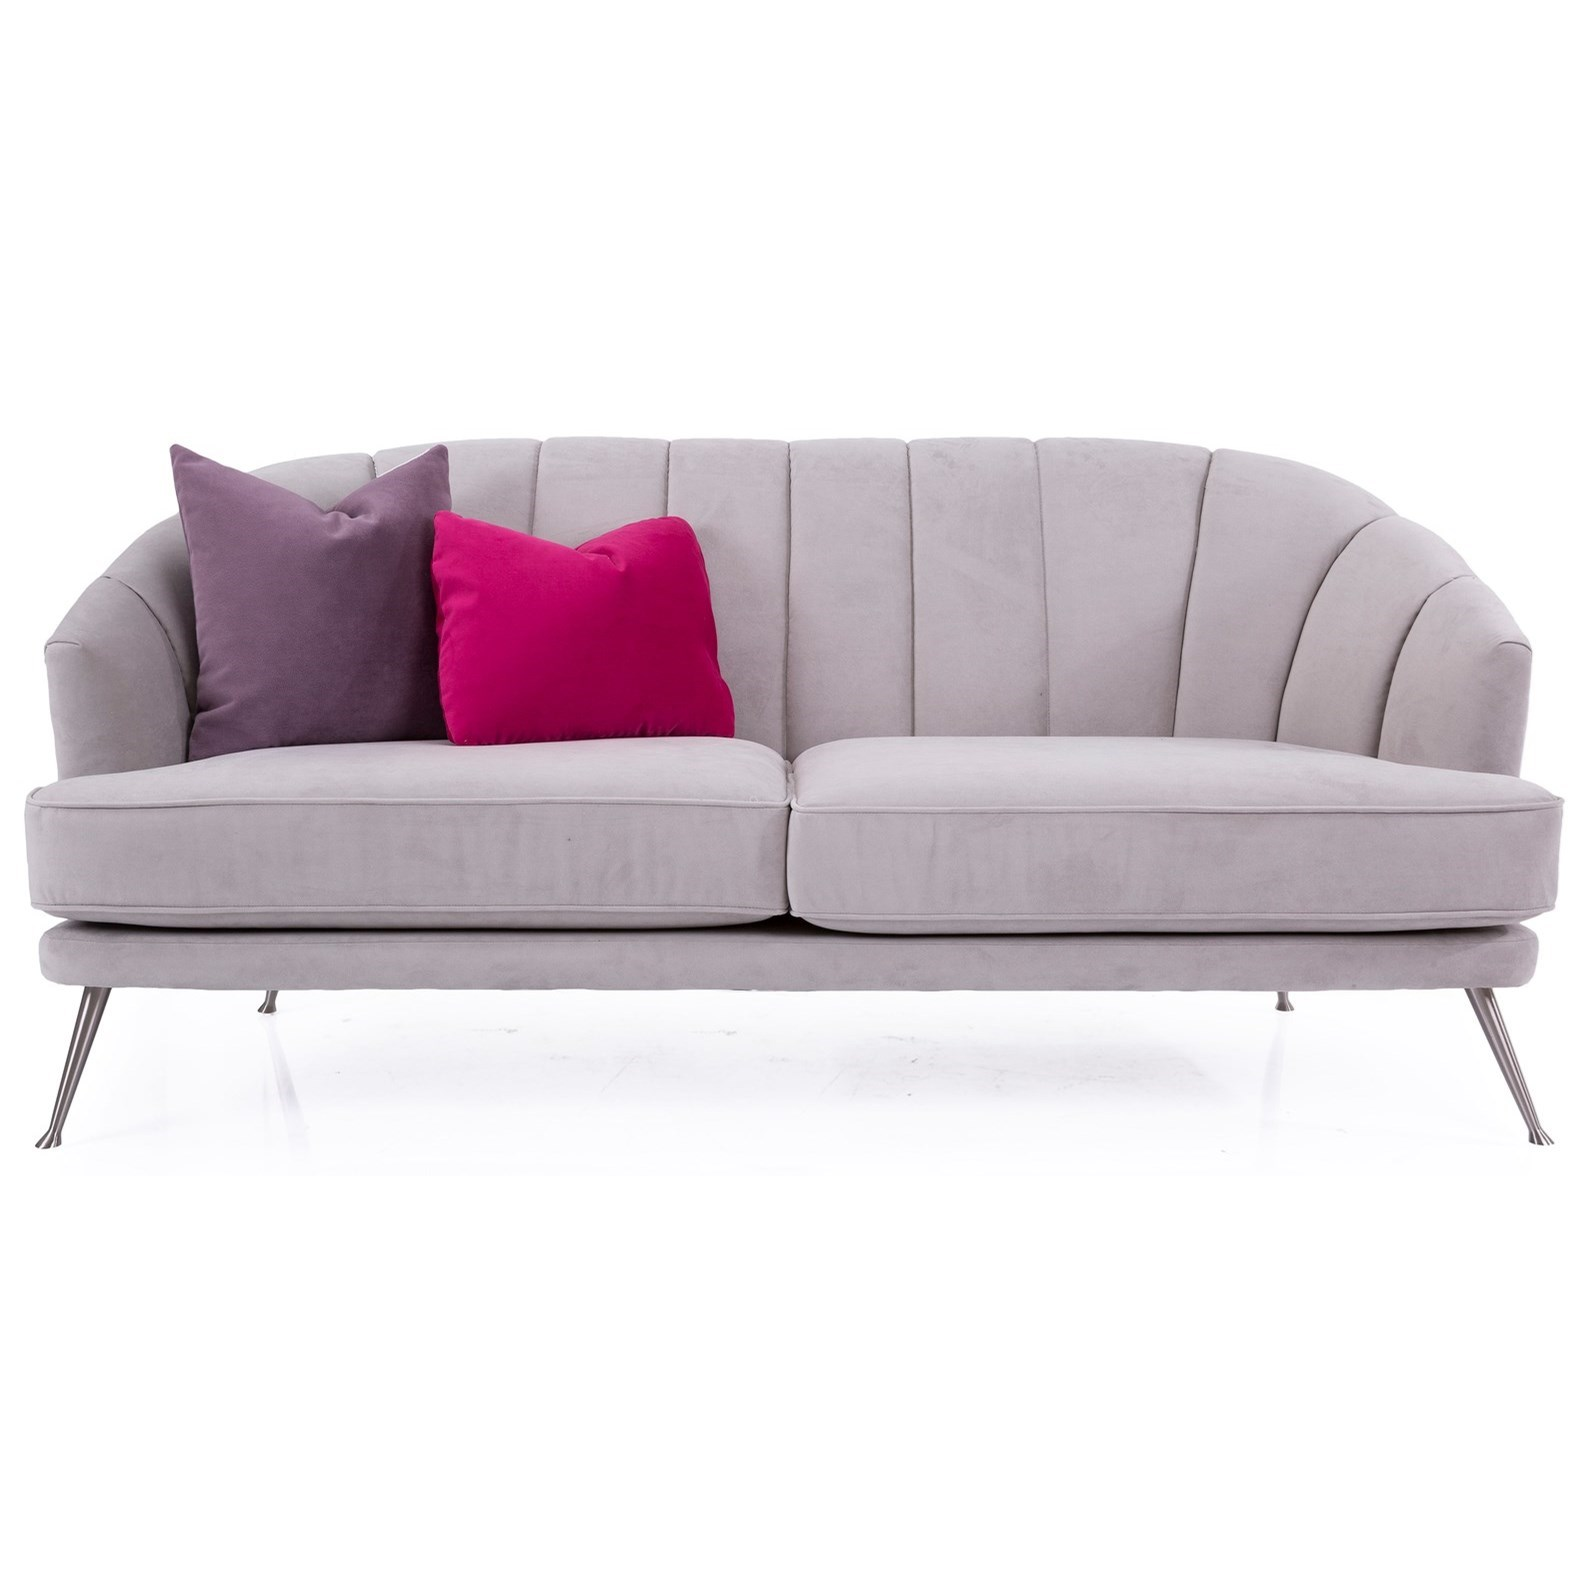 2988 Condo Sofa by Decor-Rest at Rooms for Less